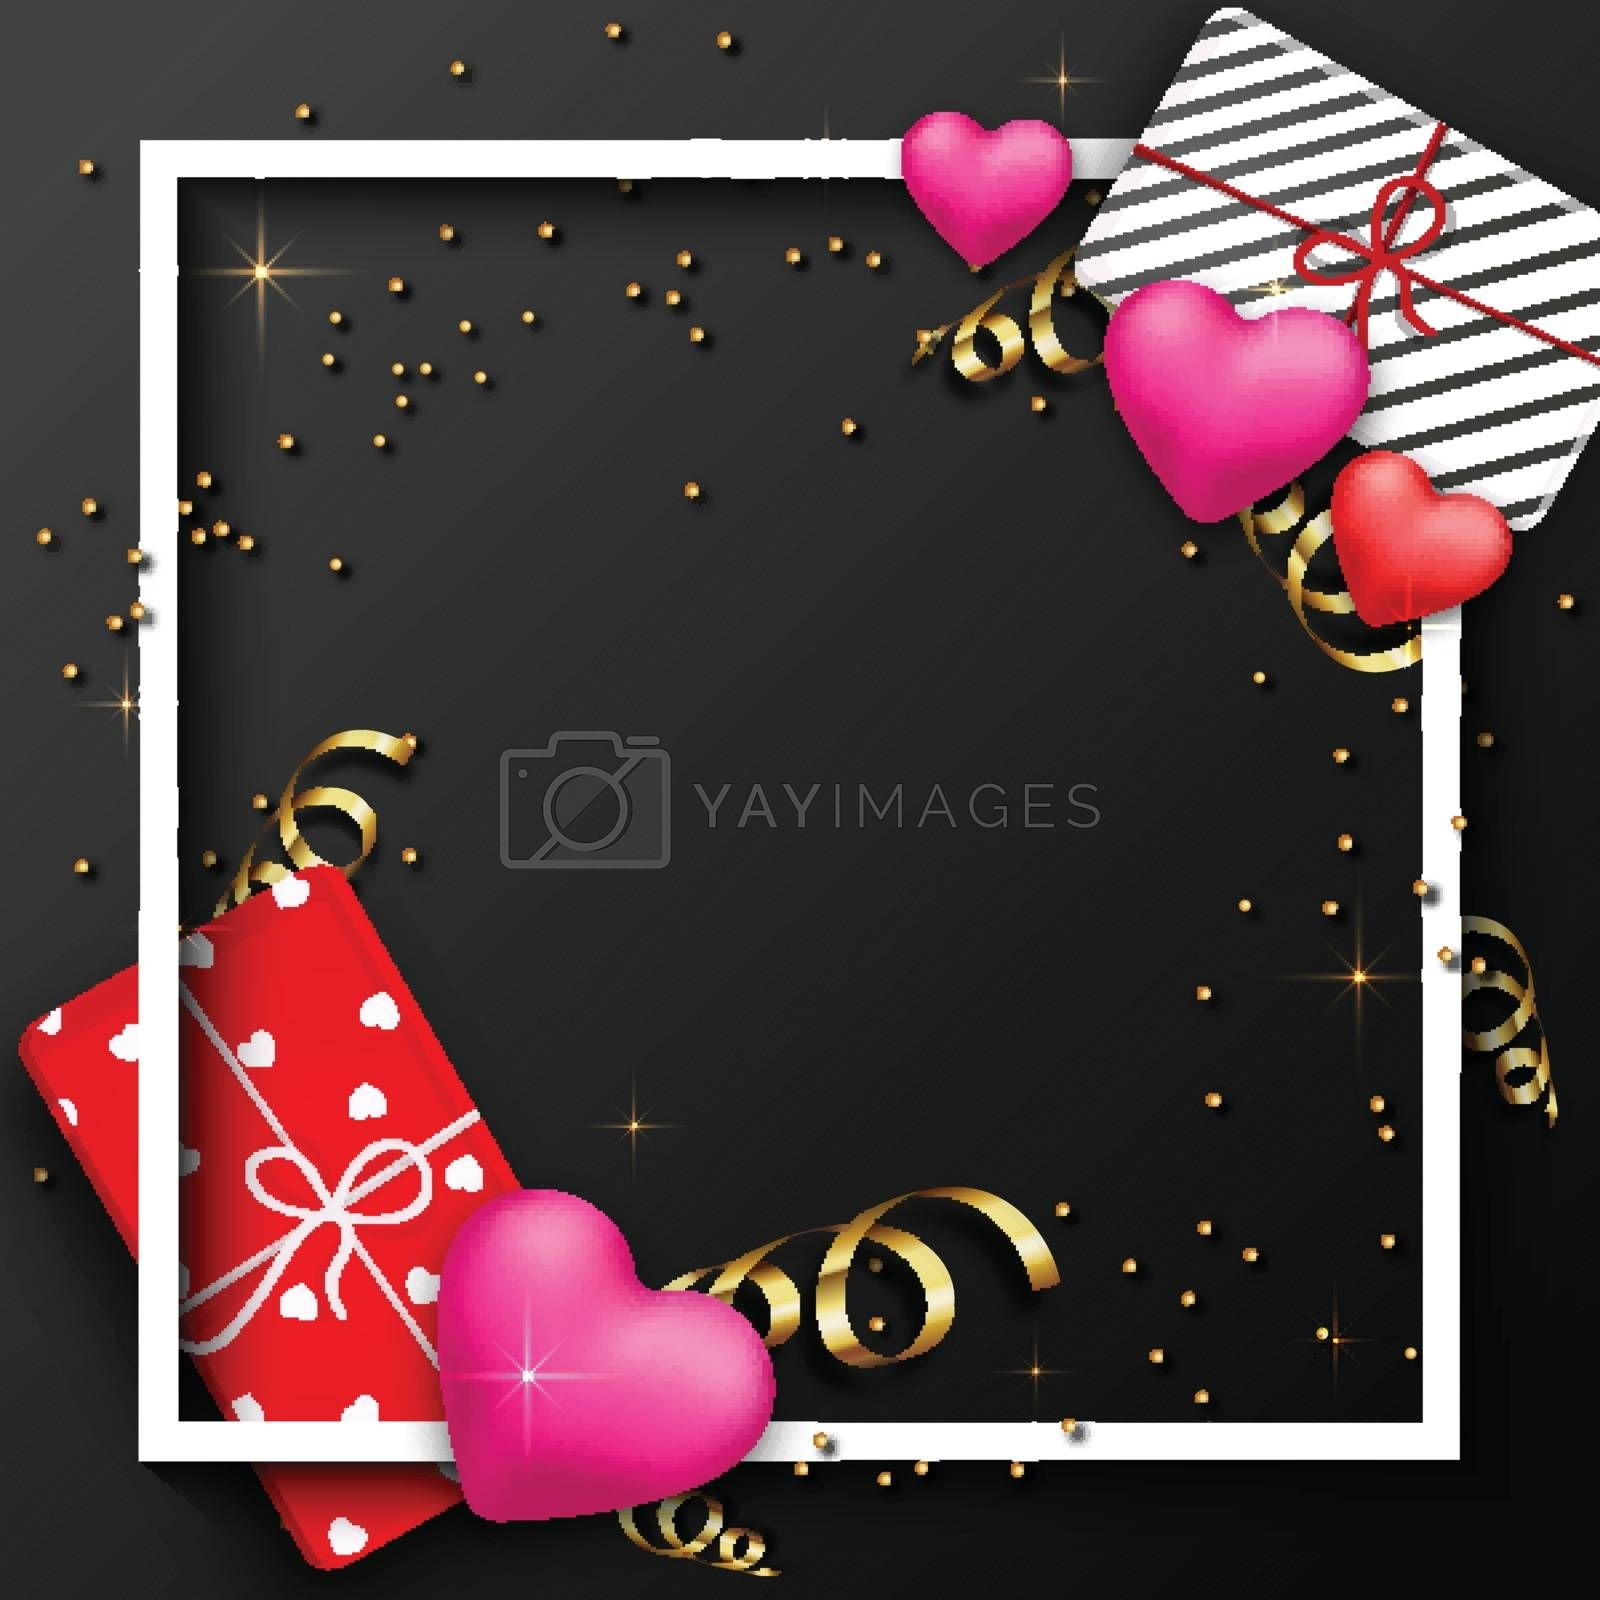 Wrapped Gifts, Hearts and Golden Confetti decorated background. Valentine's Day celebration Greeting Card design with space for your wishes.